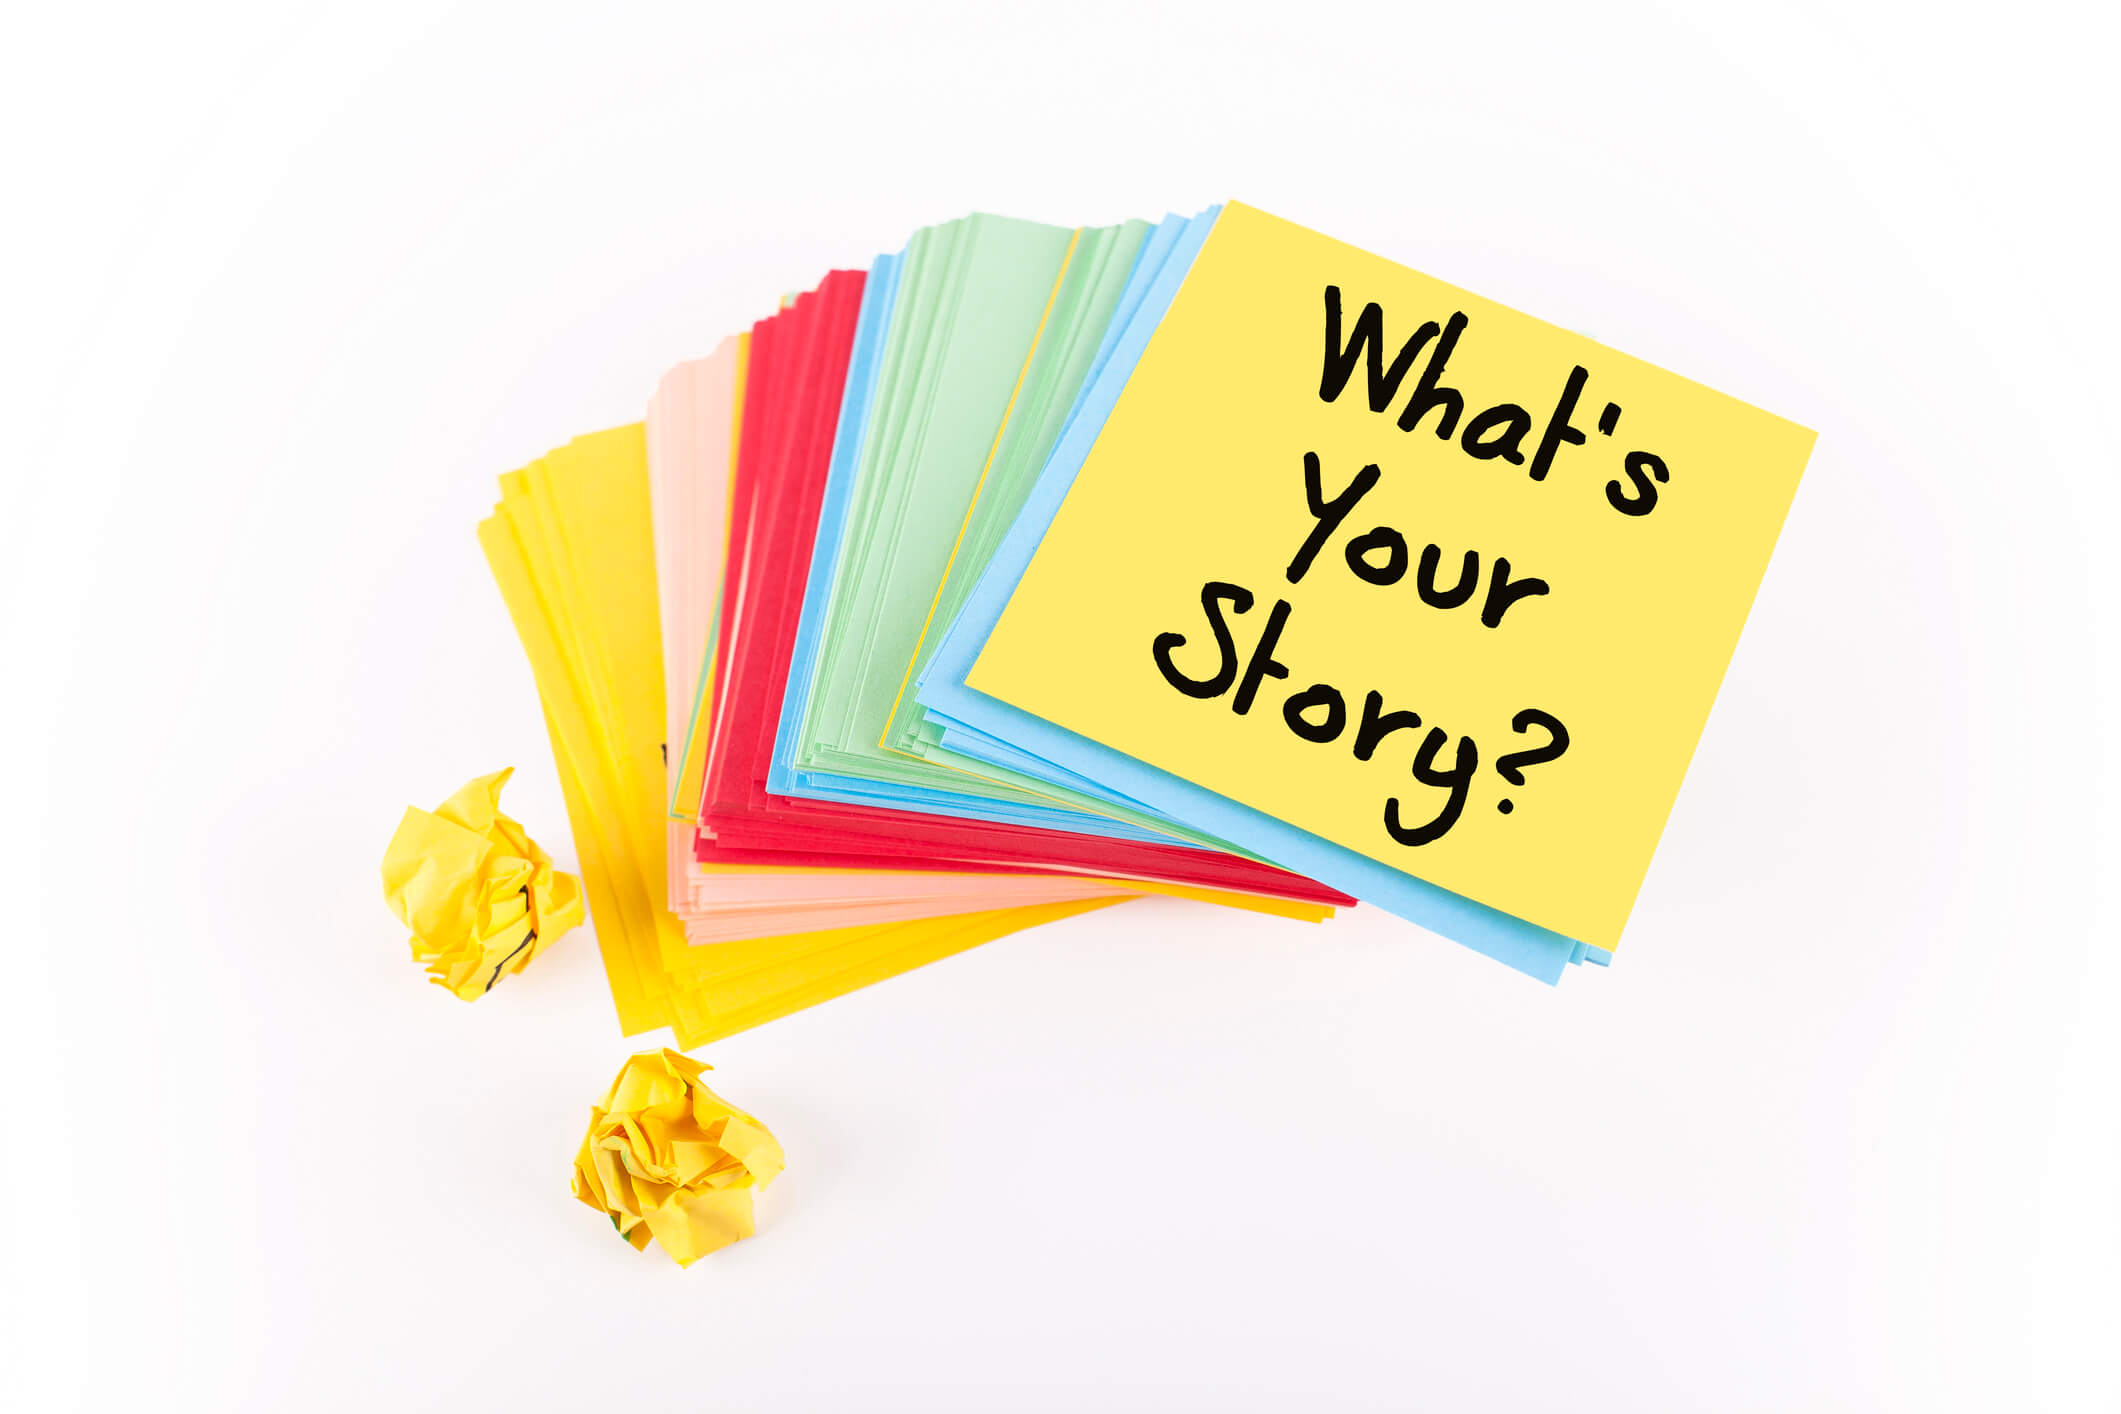 The 3 Key Steps to Writing Your Brand Story